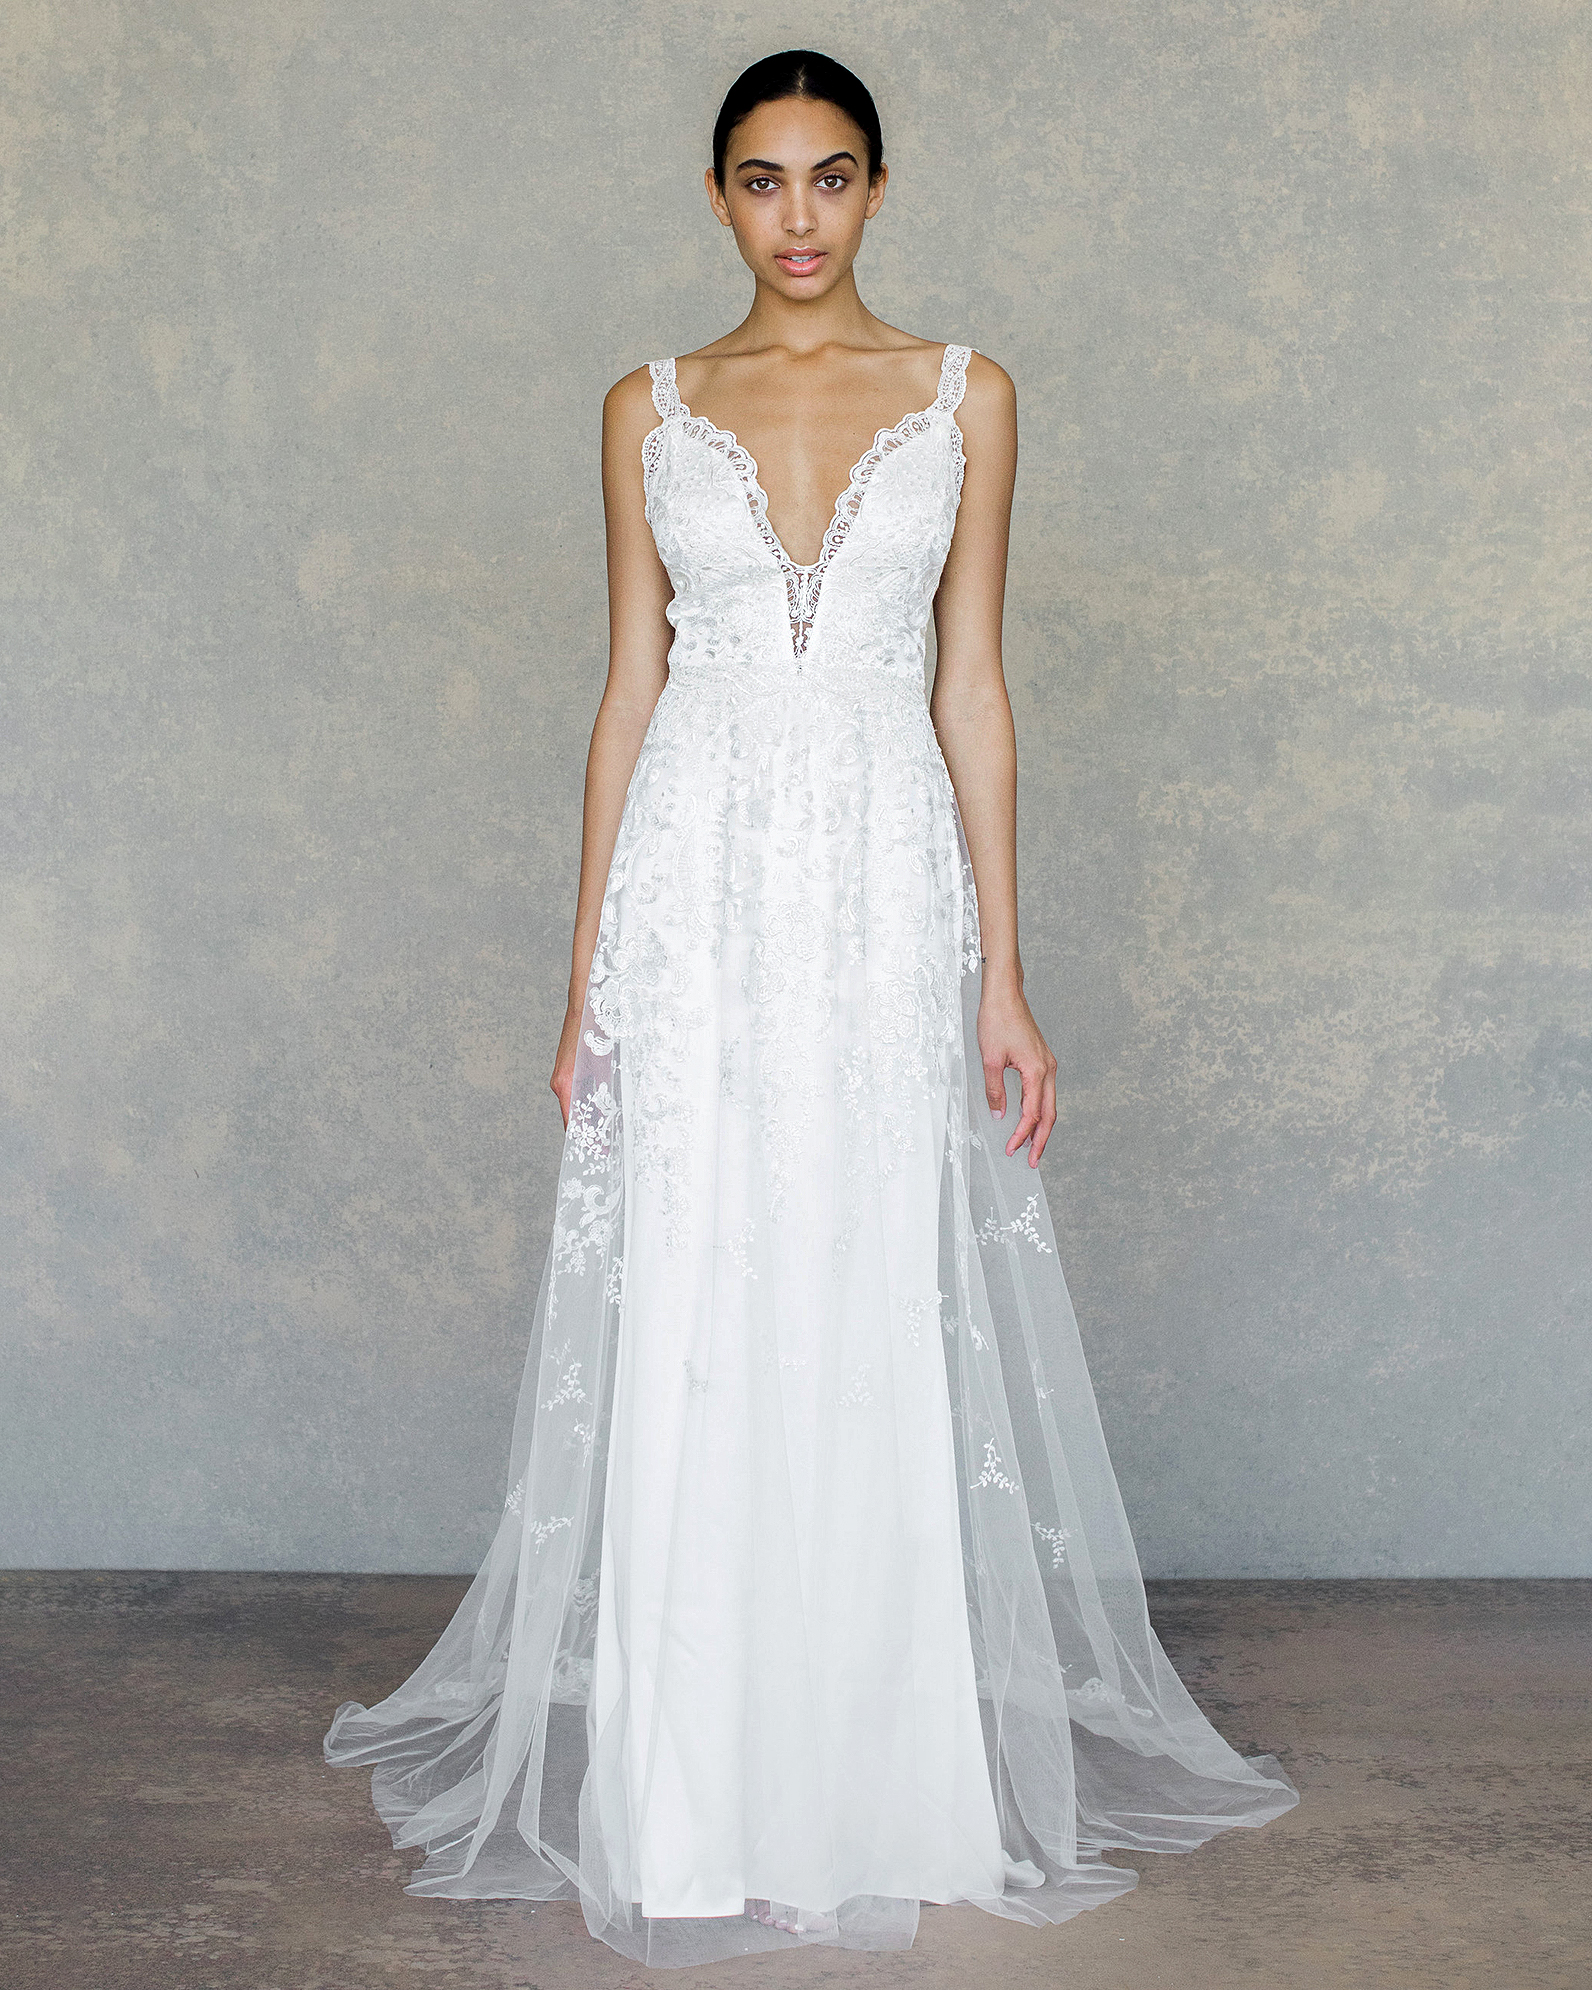 claire pettibone wedding dress spring 2019 lace bodice sheer overlay detail